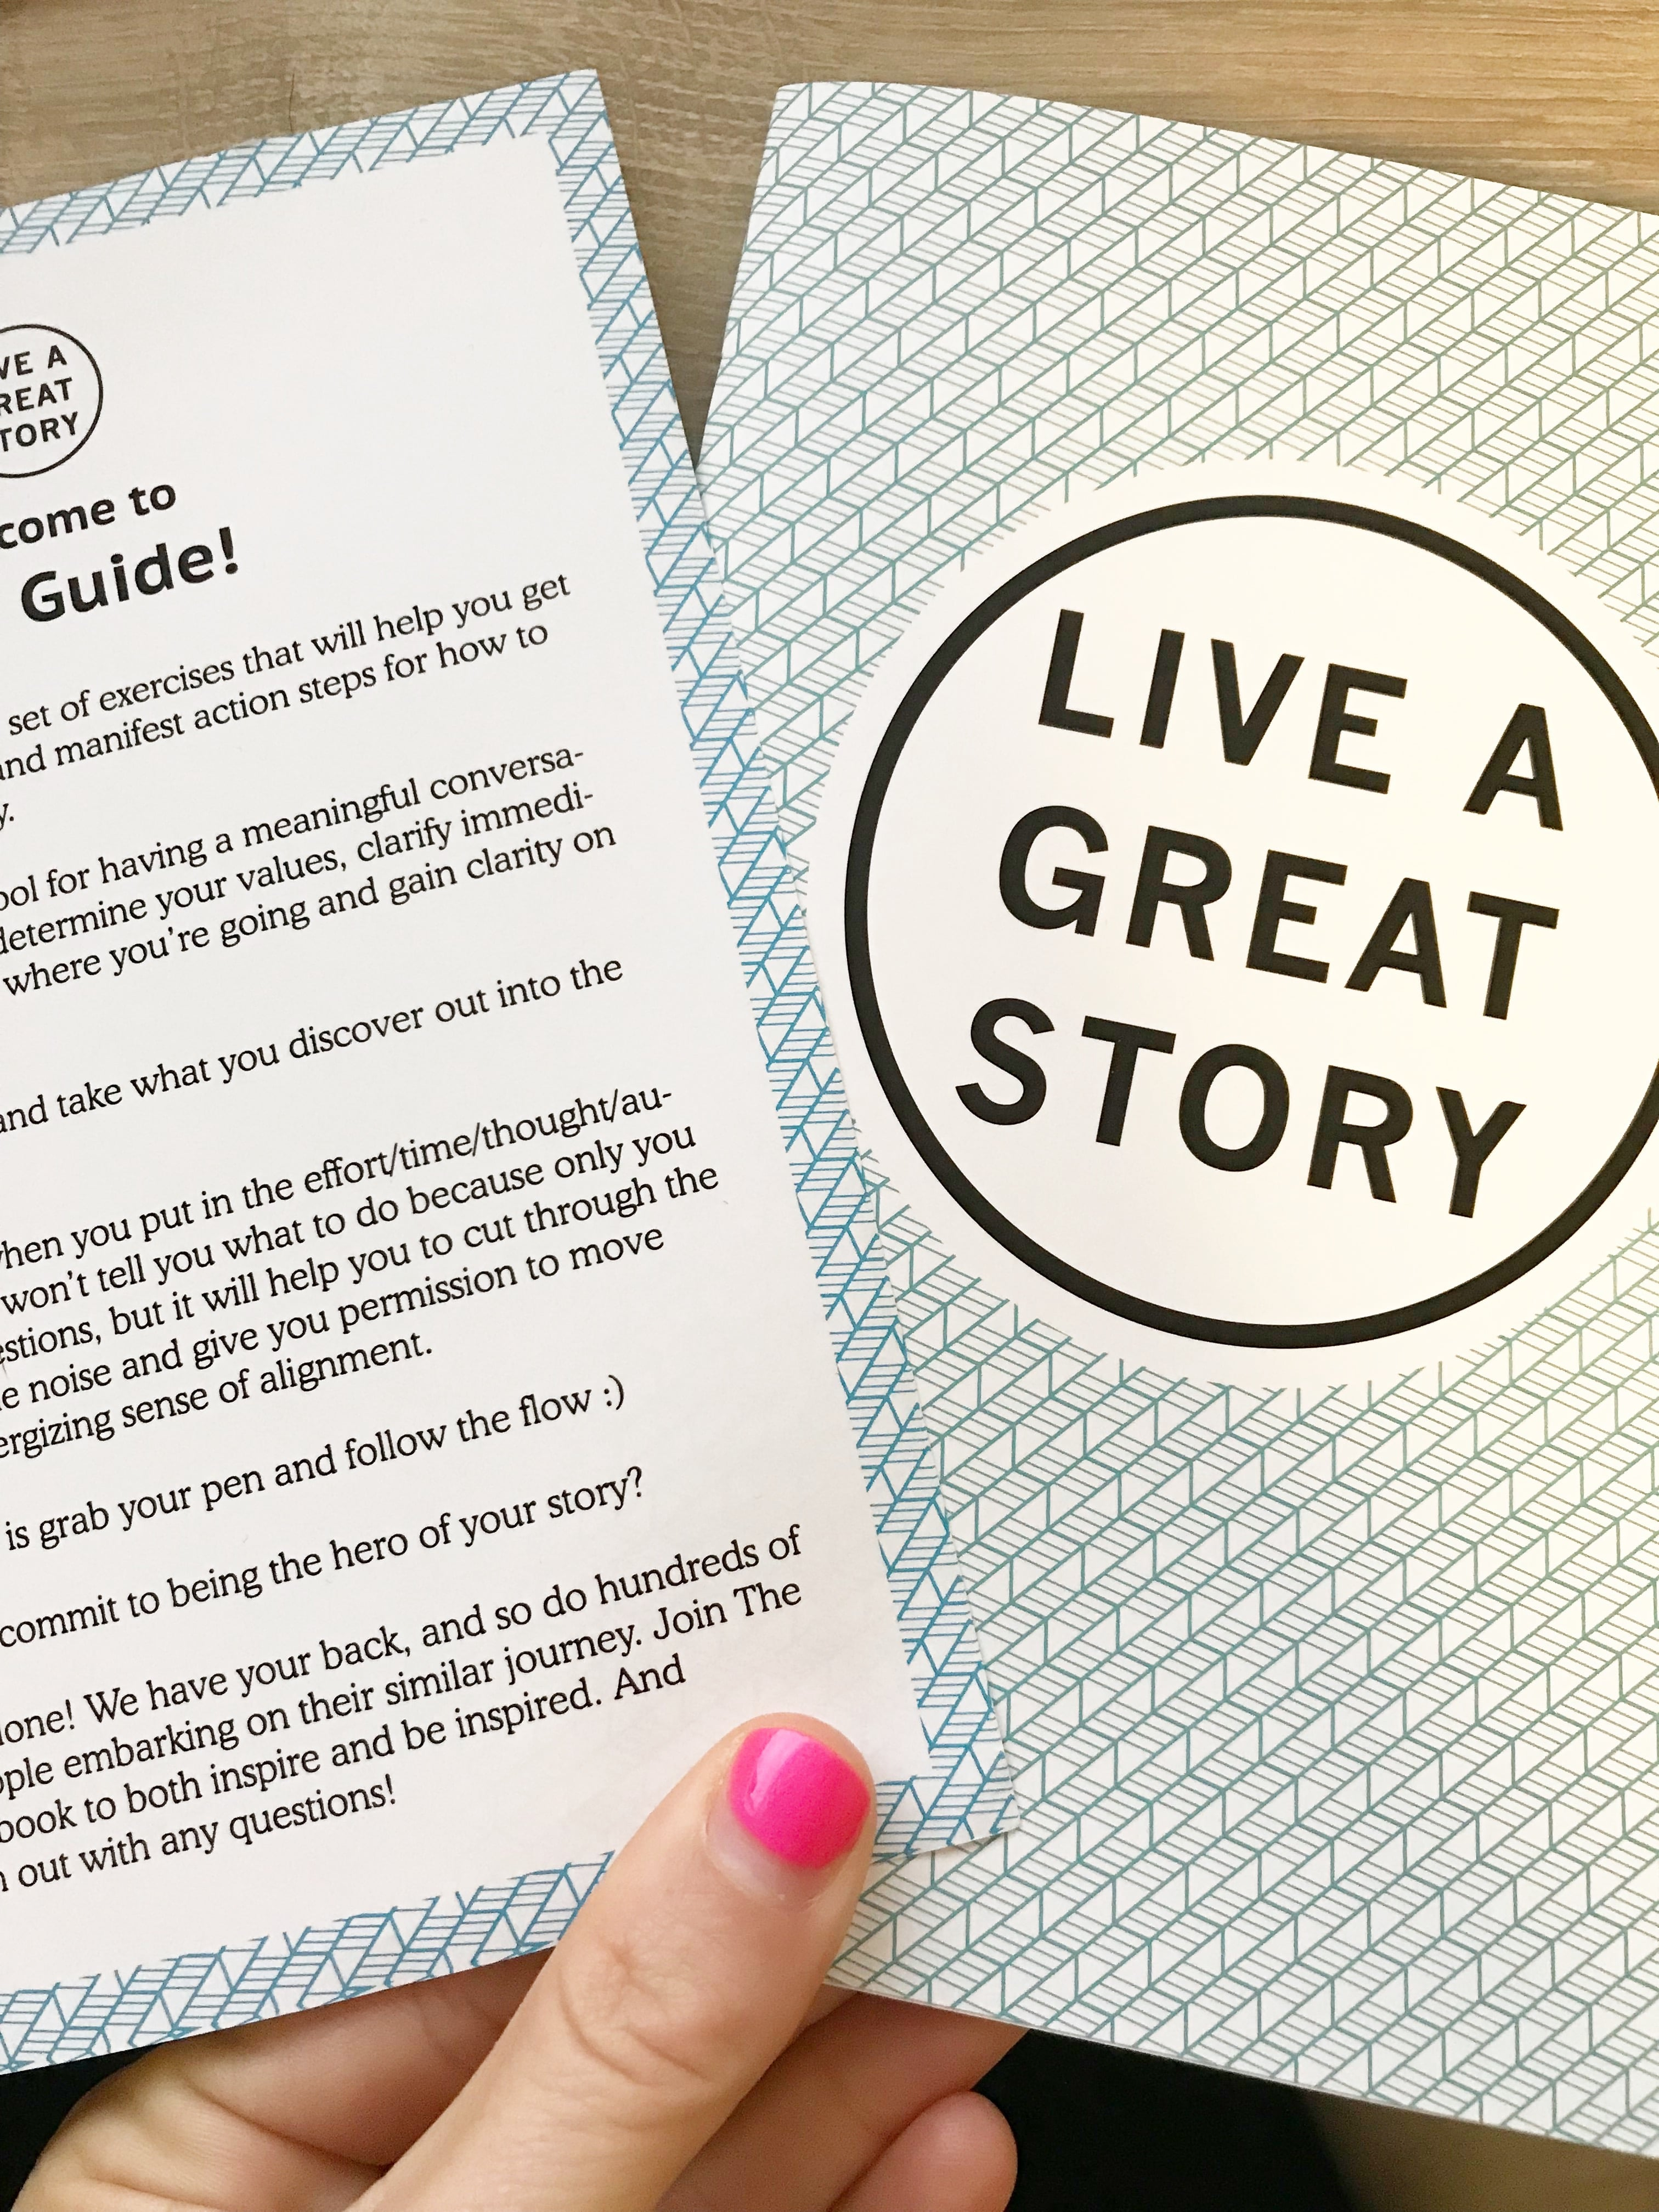 Live A Great Story - Review